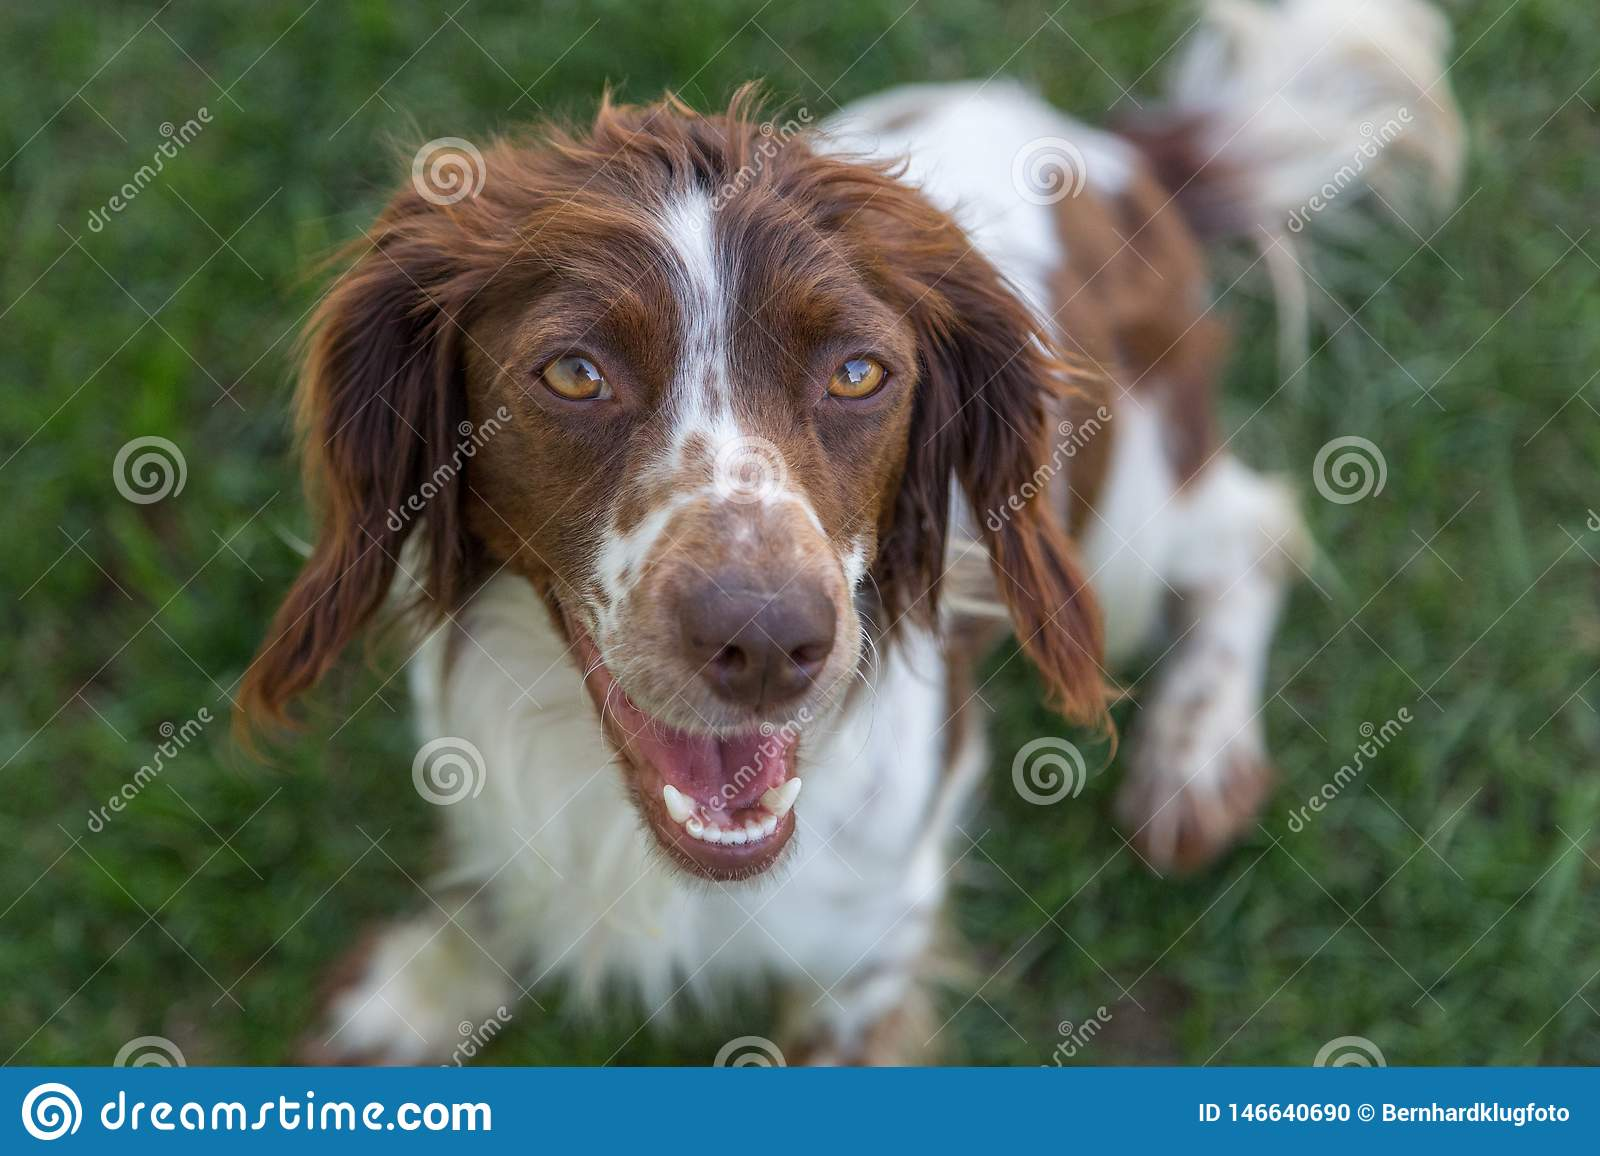 Young, playful springer spaniel excitedly waiting to play fetch